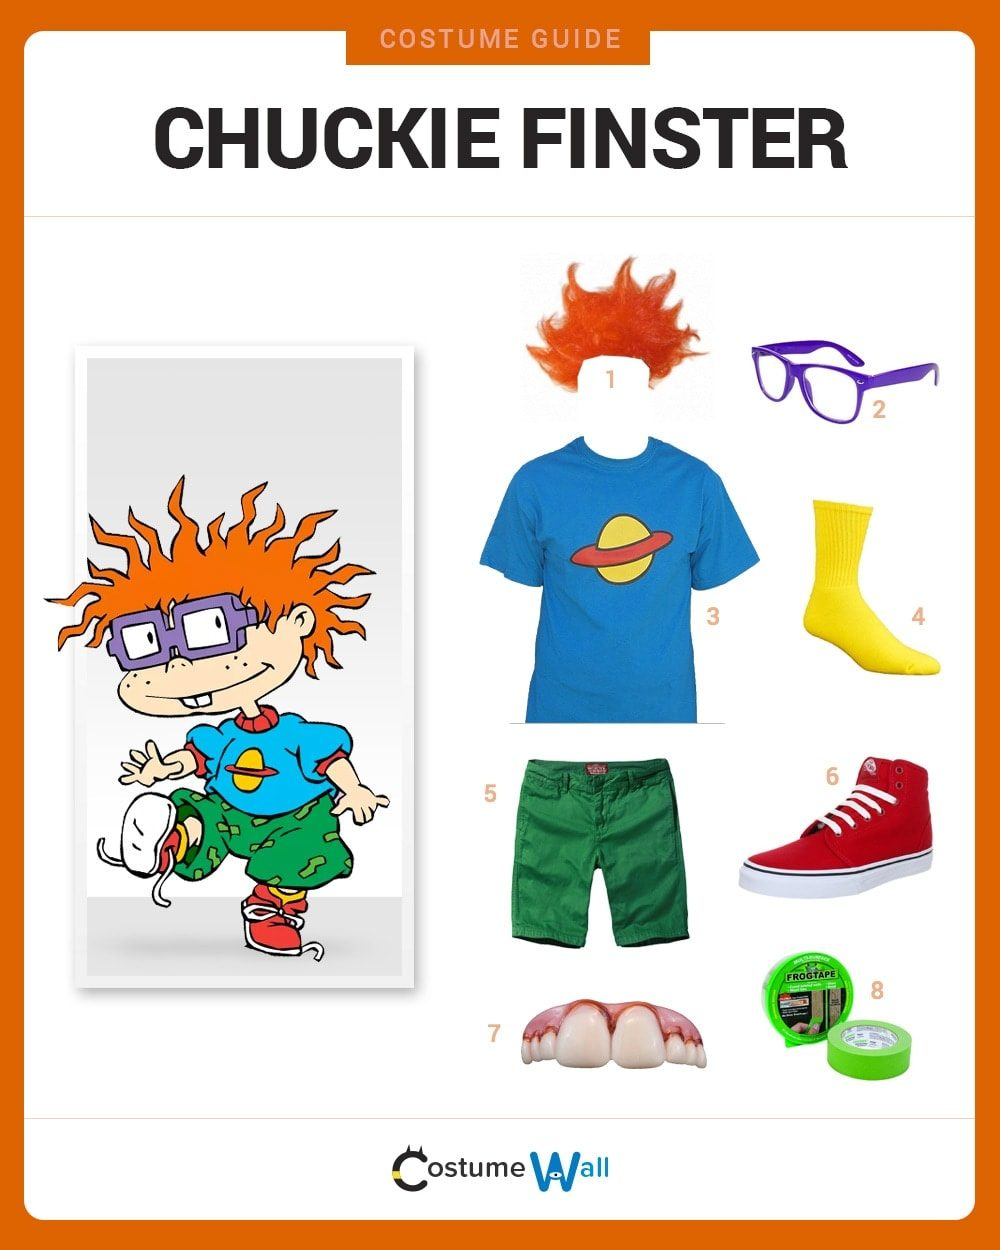 chuckie finster costume guide